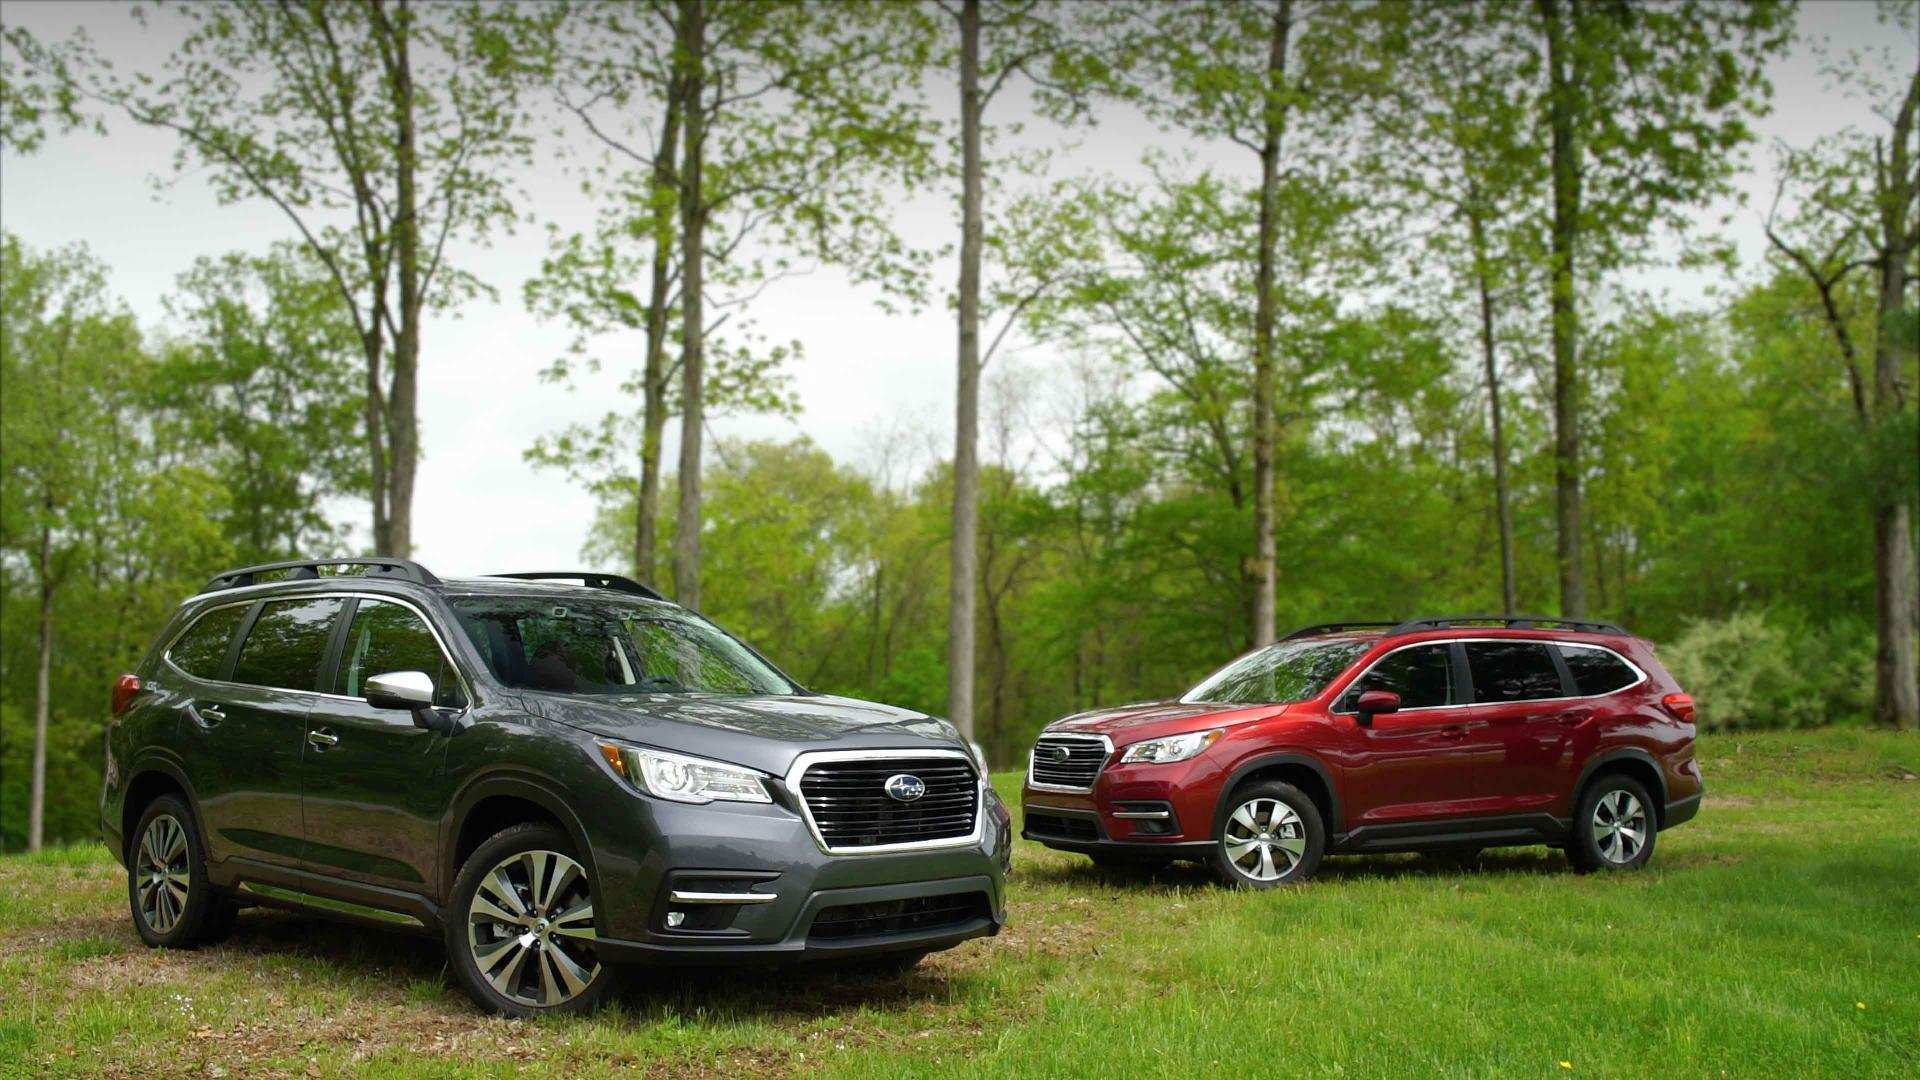 58 Concept of 2019 Subaru Ascent Dimensions Price by 2019 Subaru Ascent Dimensions